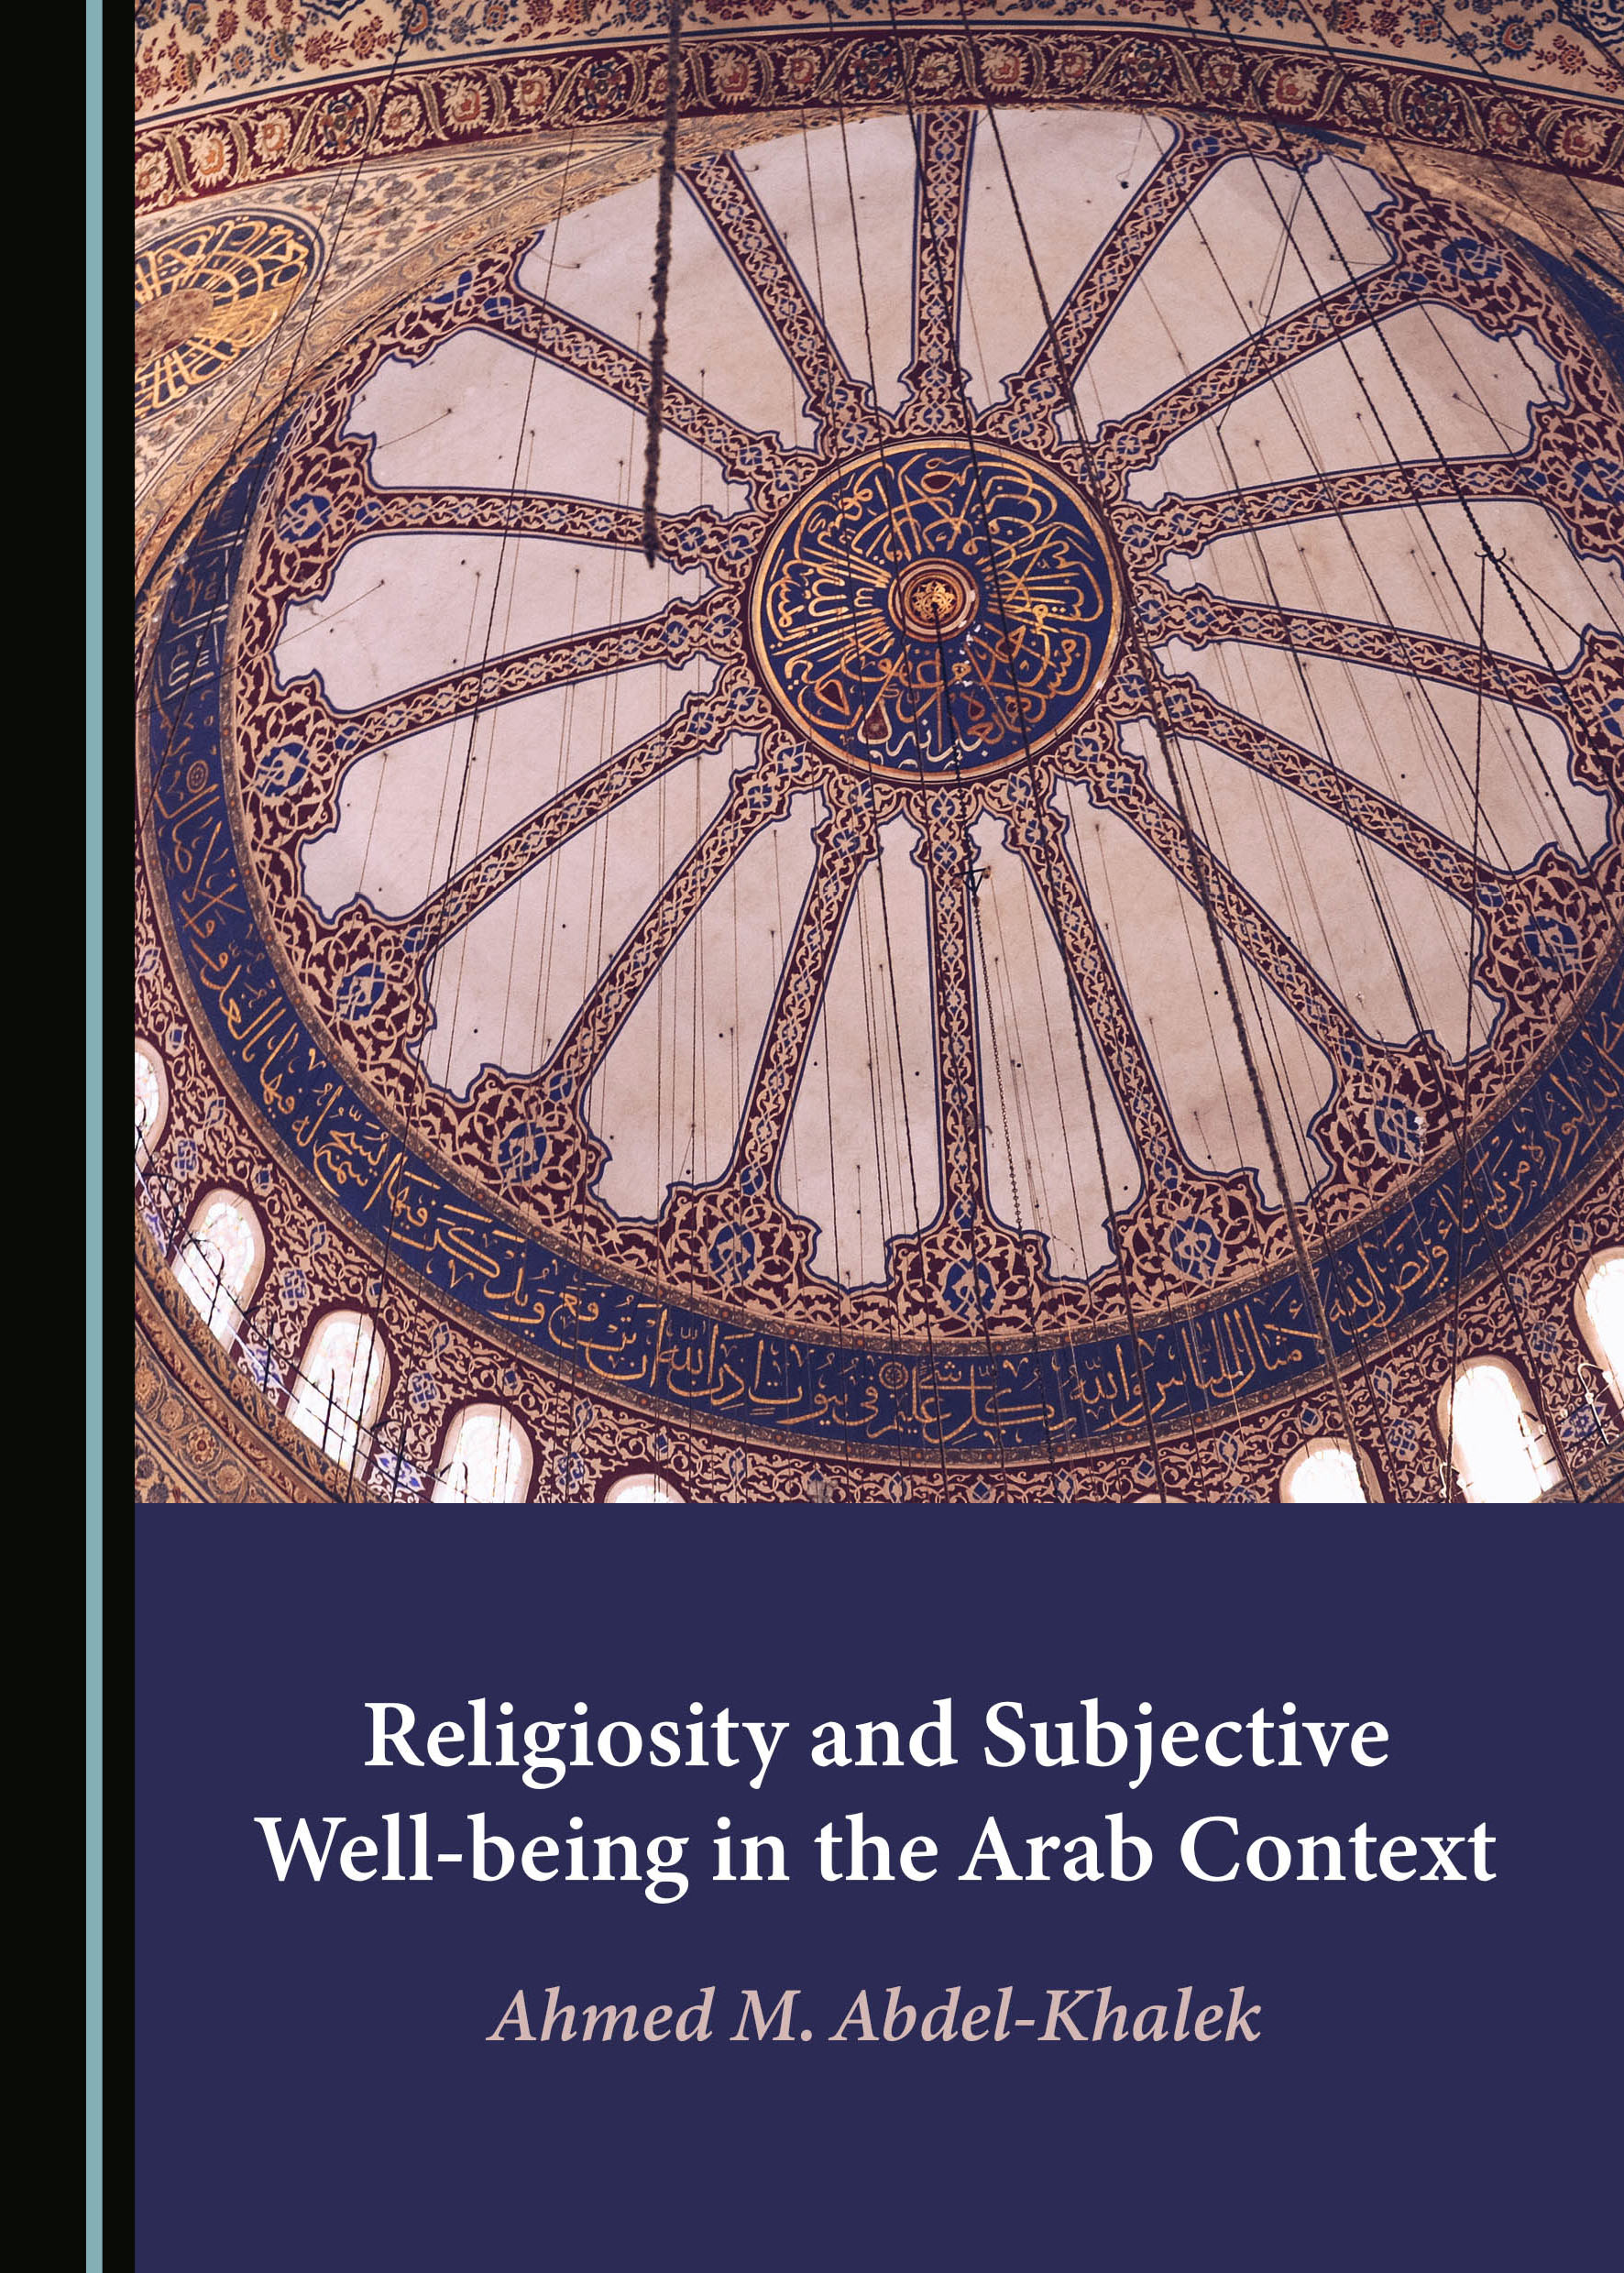 Religiosity and Subjective Well-being in the Arab Context